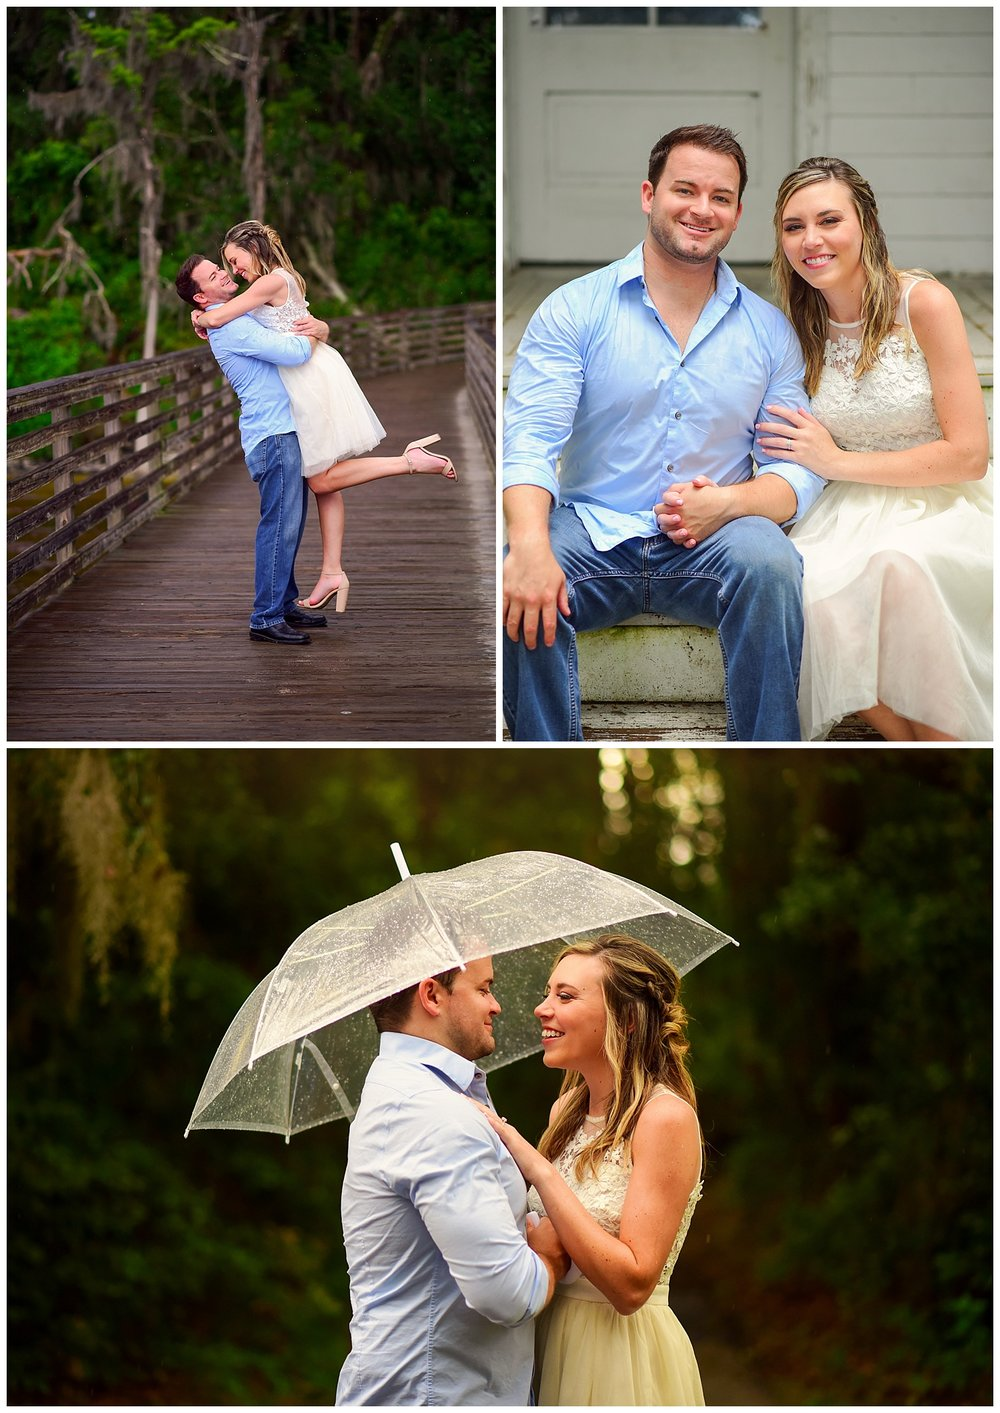 Rainy engagement shoot